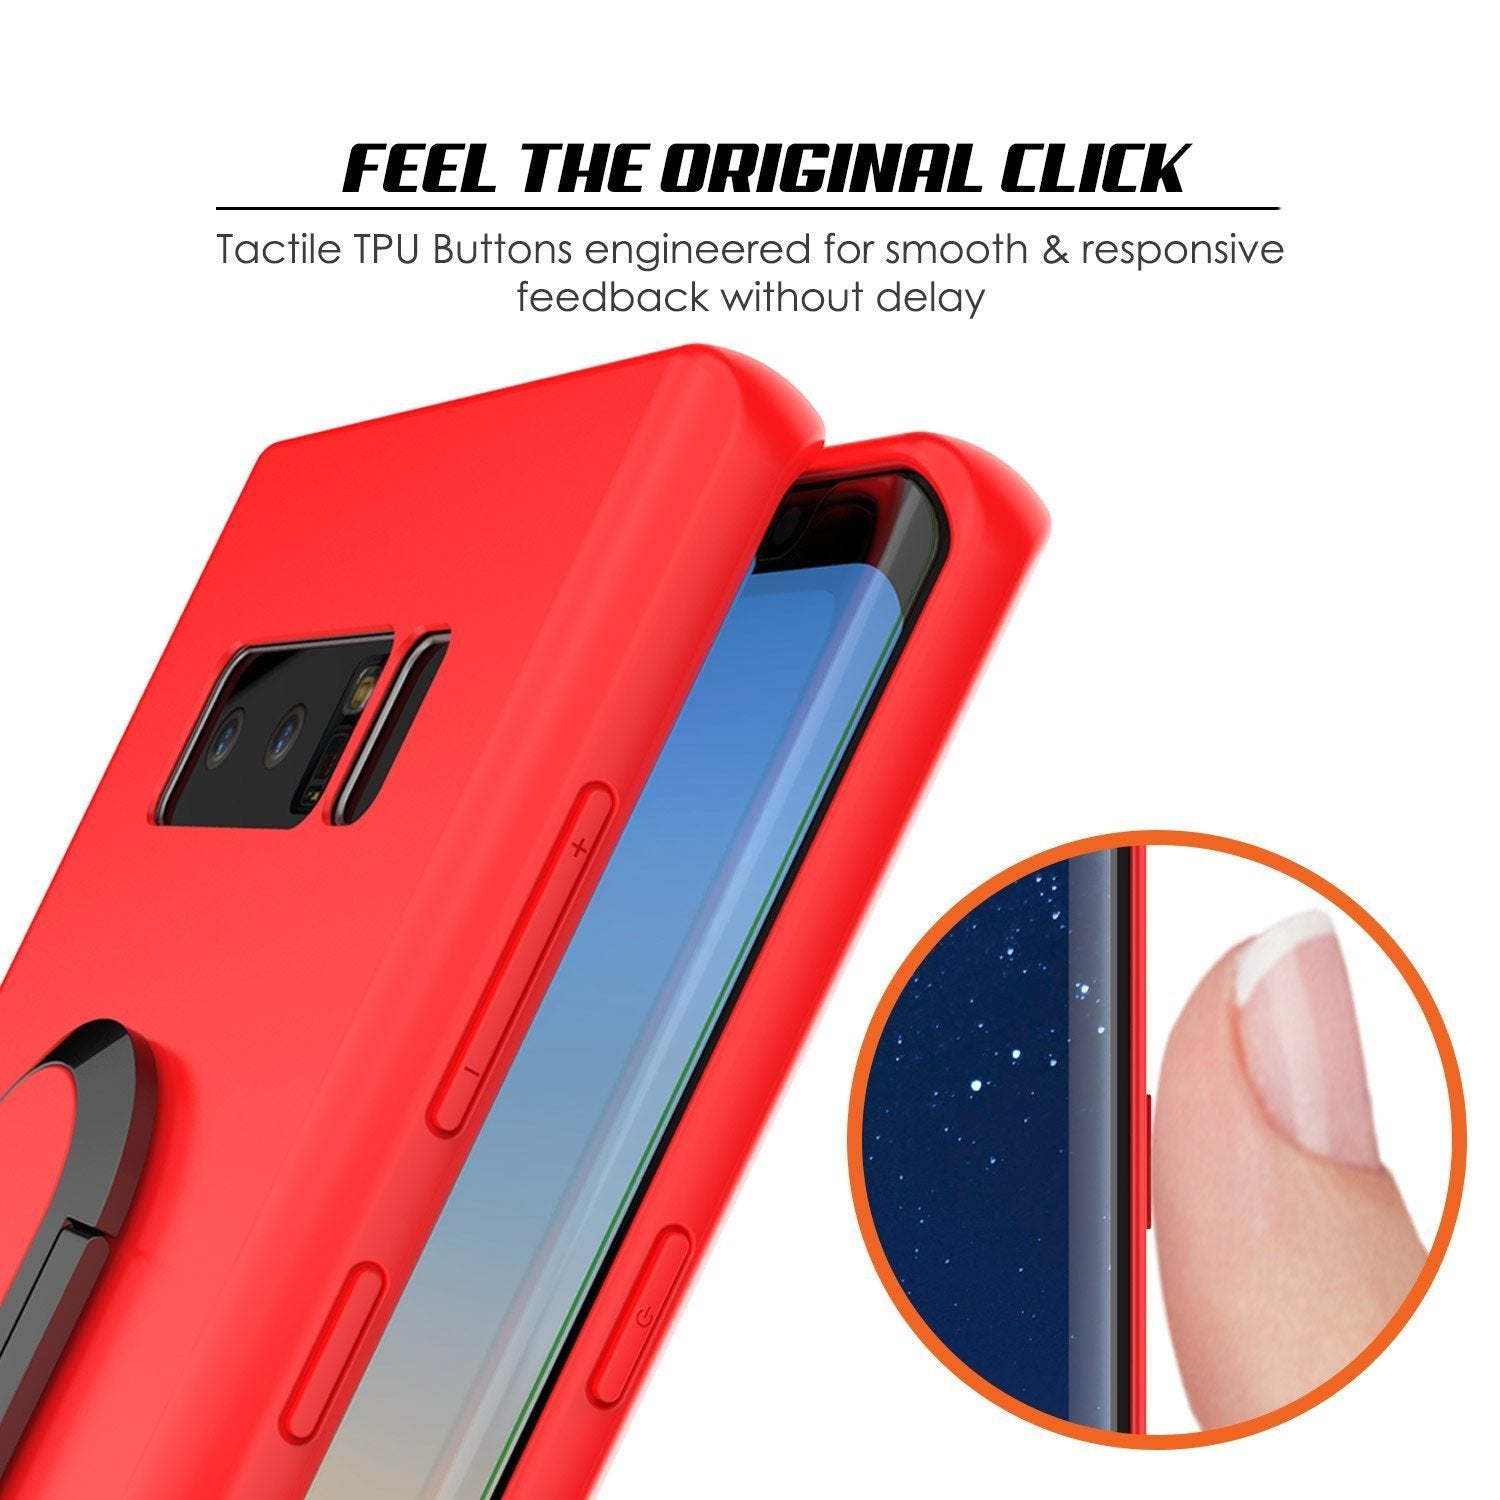 Galaxy Note 8 Case, Punkcase Magnetix Protective TPU Cover W/ Kickstand, Screen Protector [Red] - PunkCase NZ